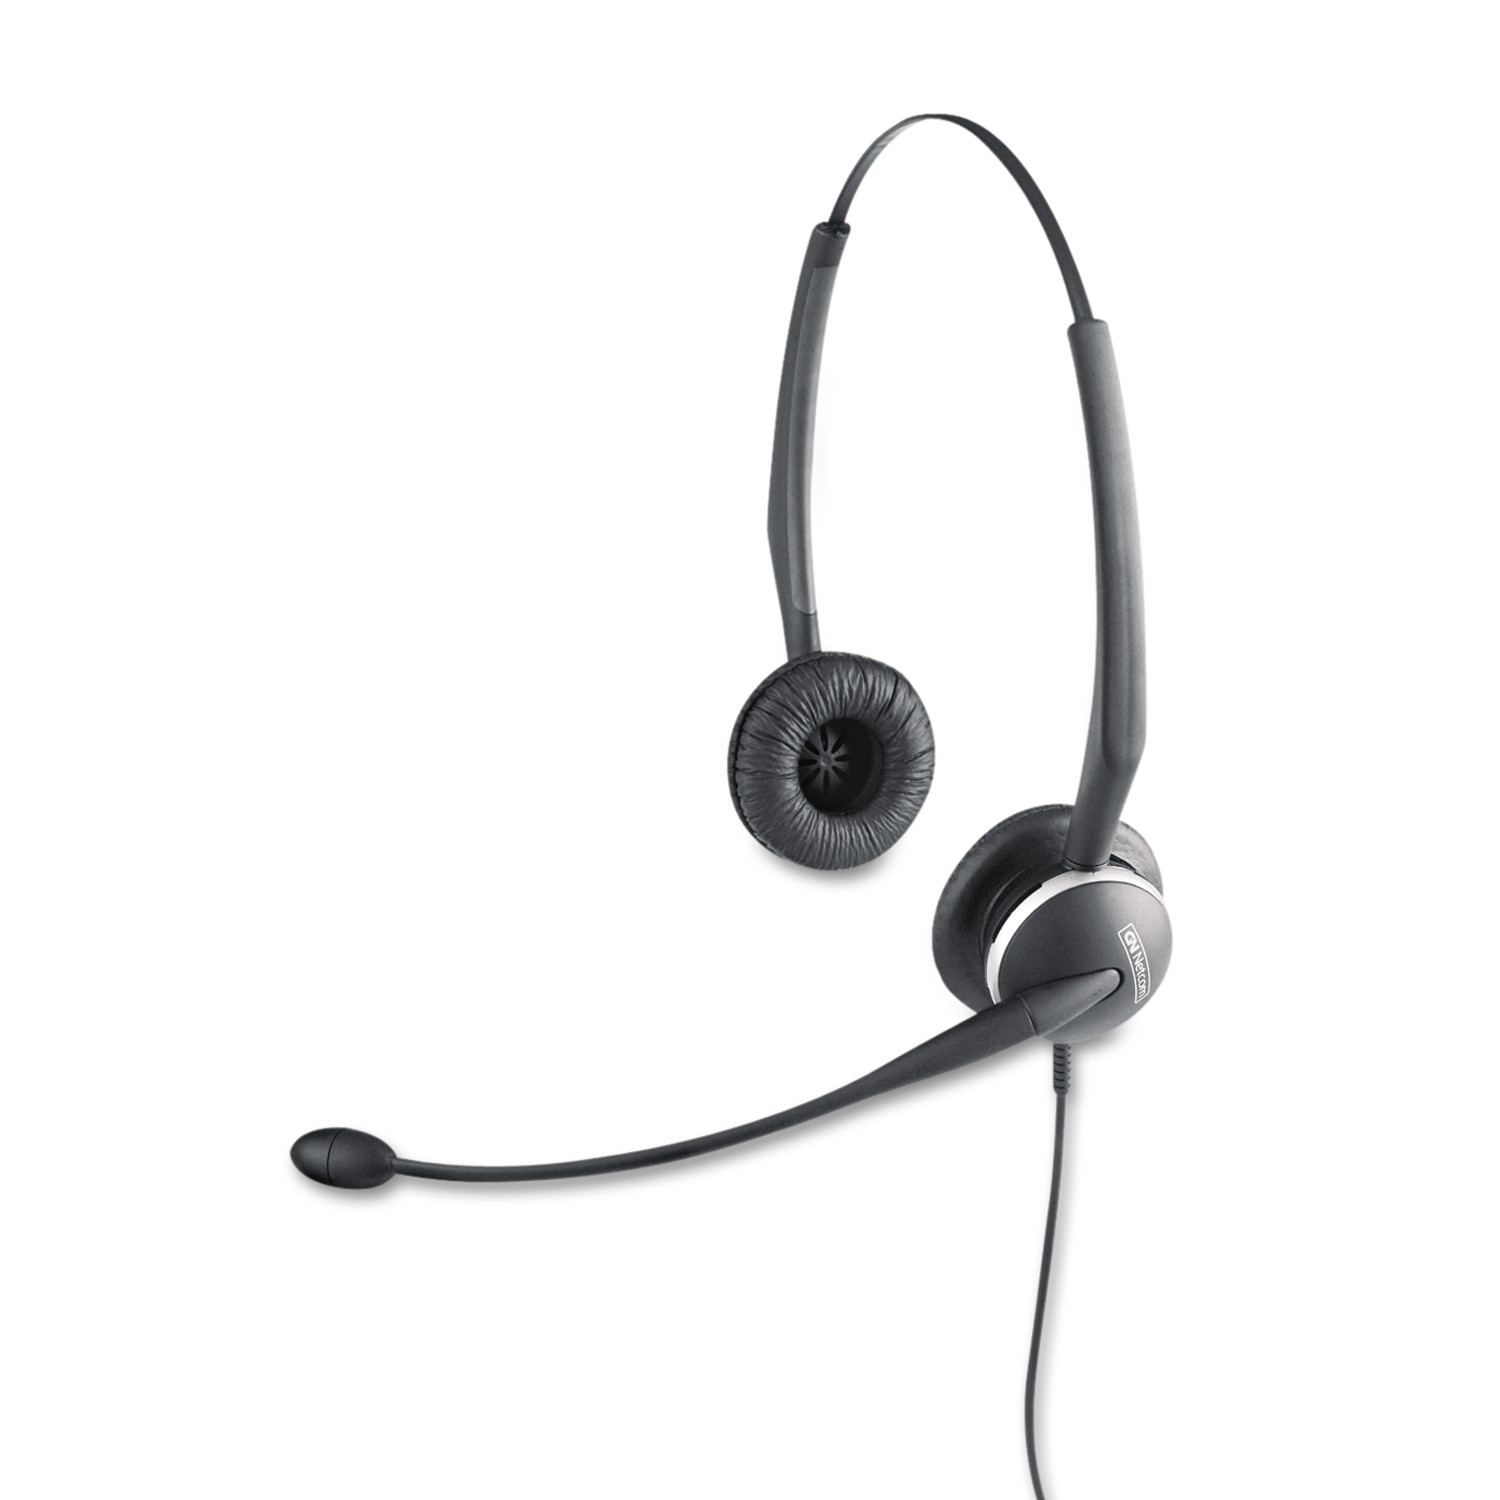 Jabra GN2125 Binaural Over-the-Head Telephone Headset w Noise Canceling Mic by GN Netcom, Inc.